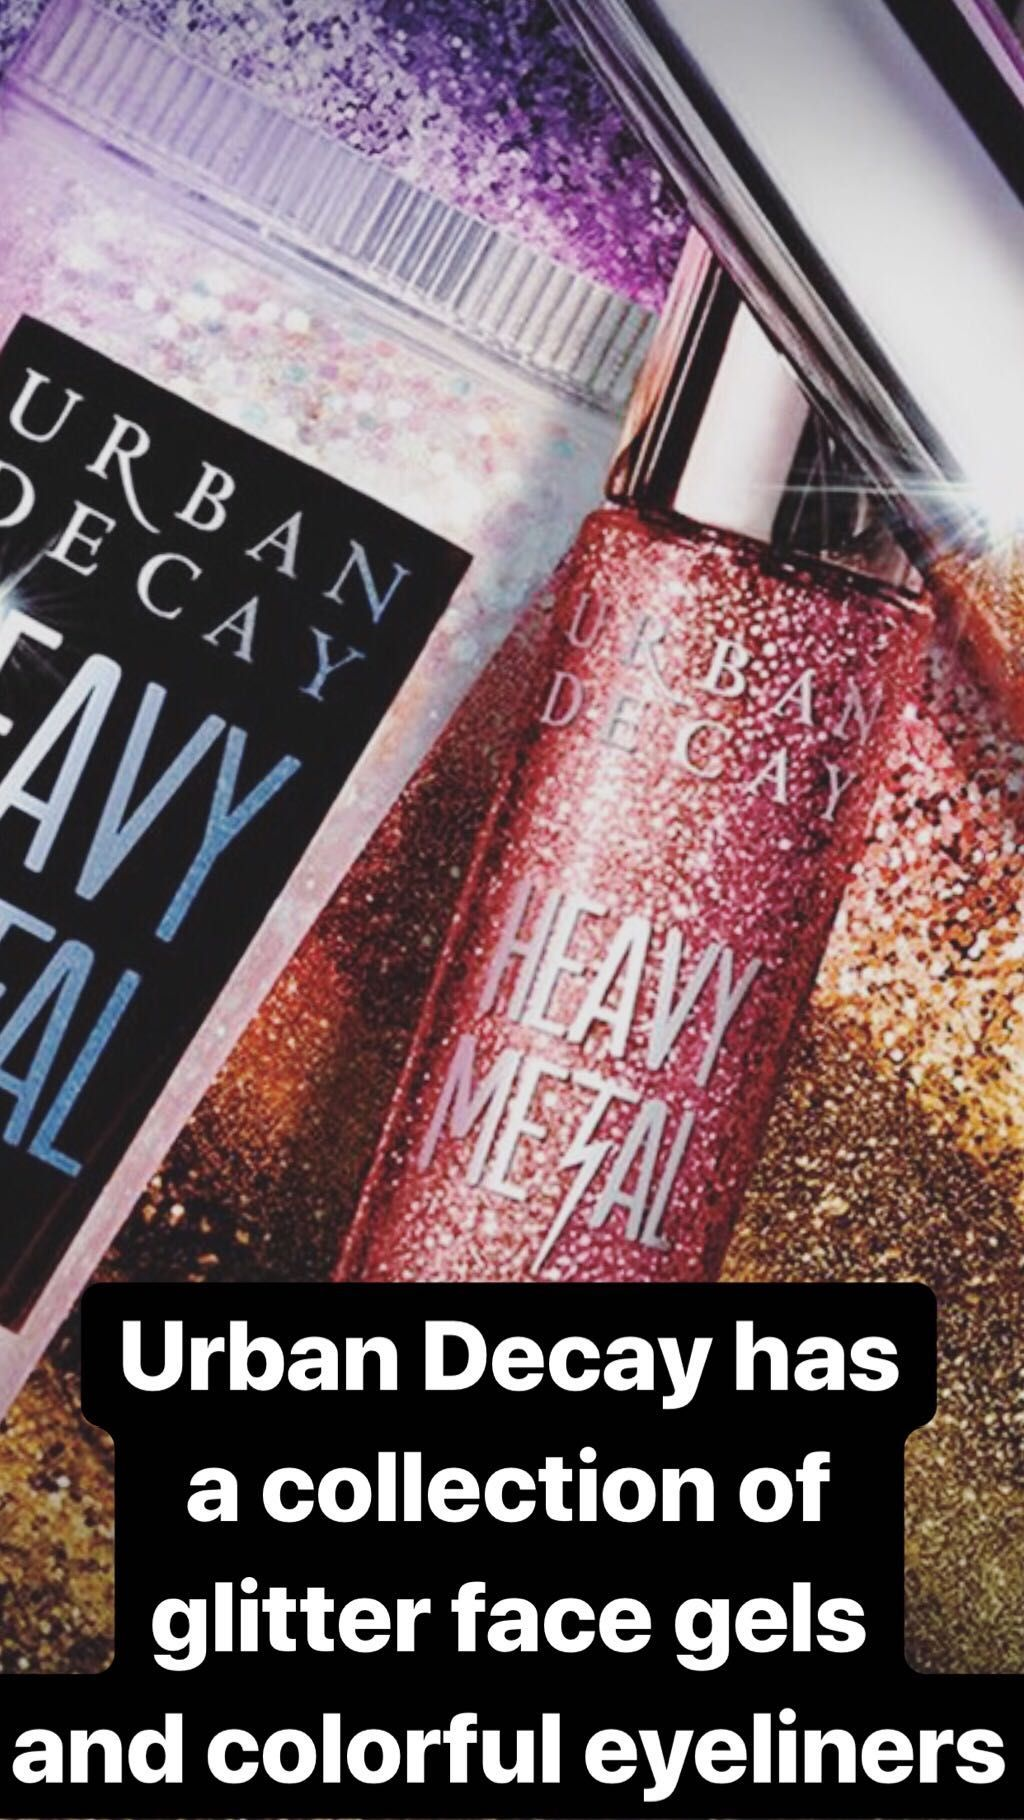 Urban Decay is bringing '90s makeup back with a collection